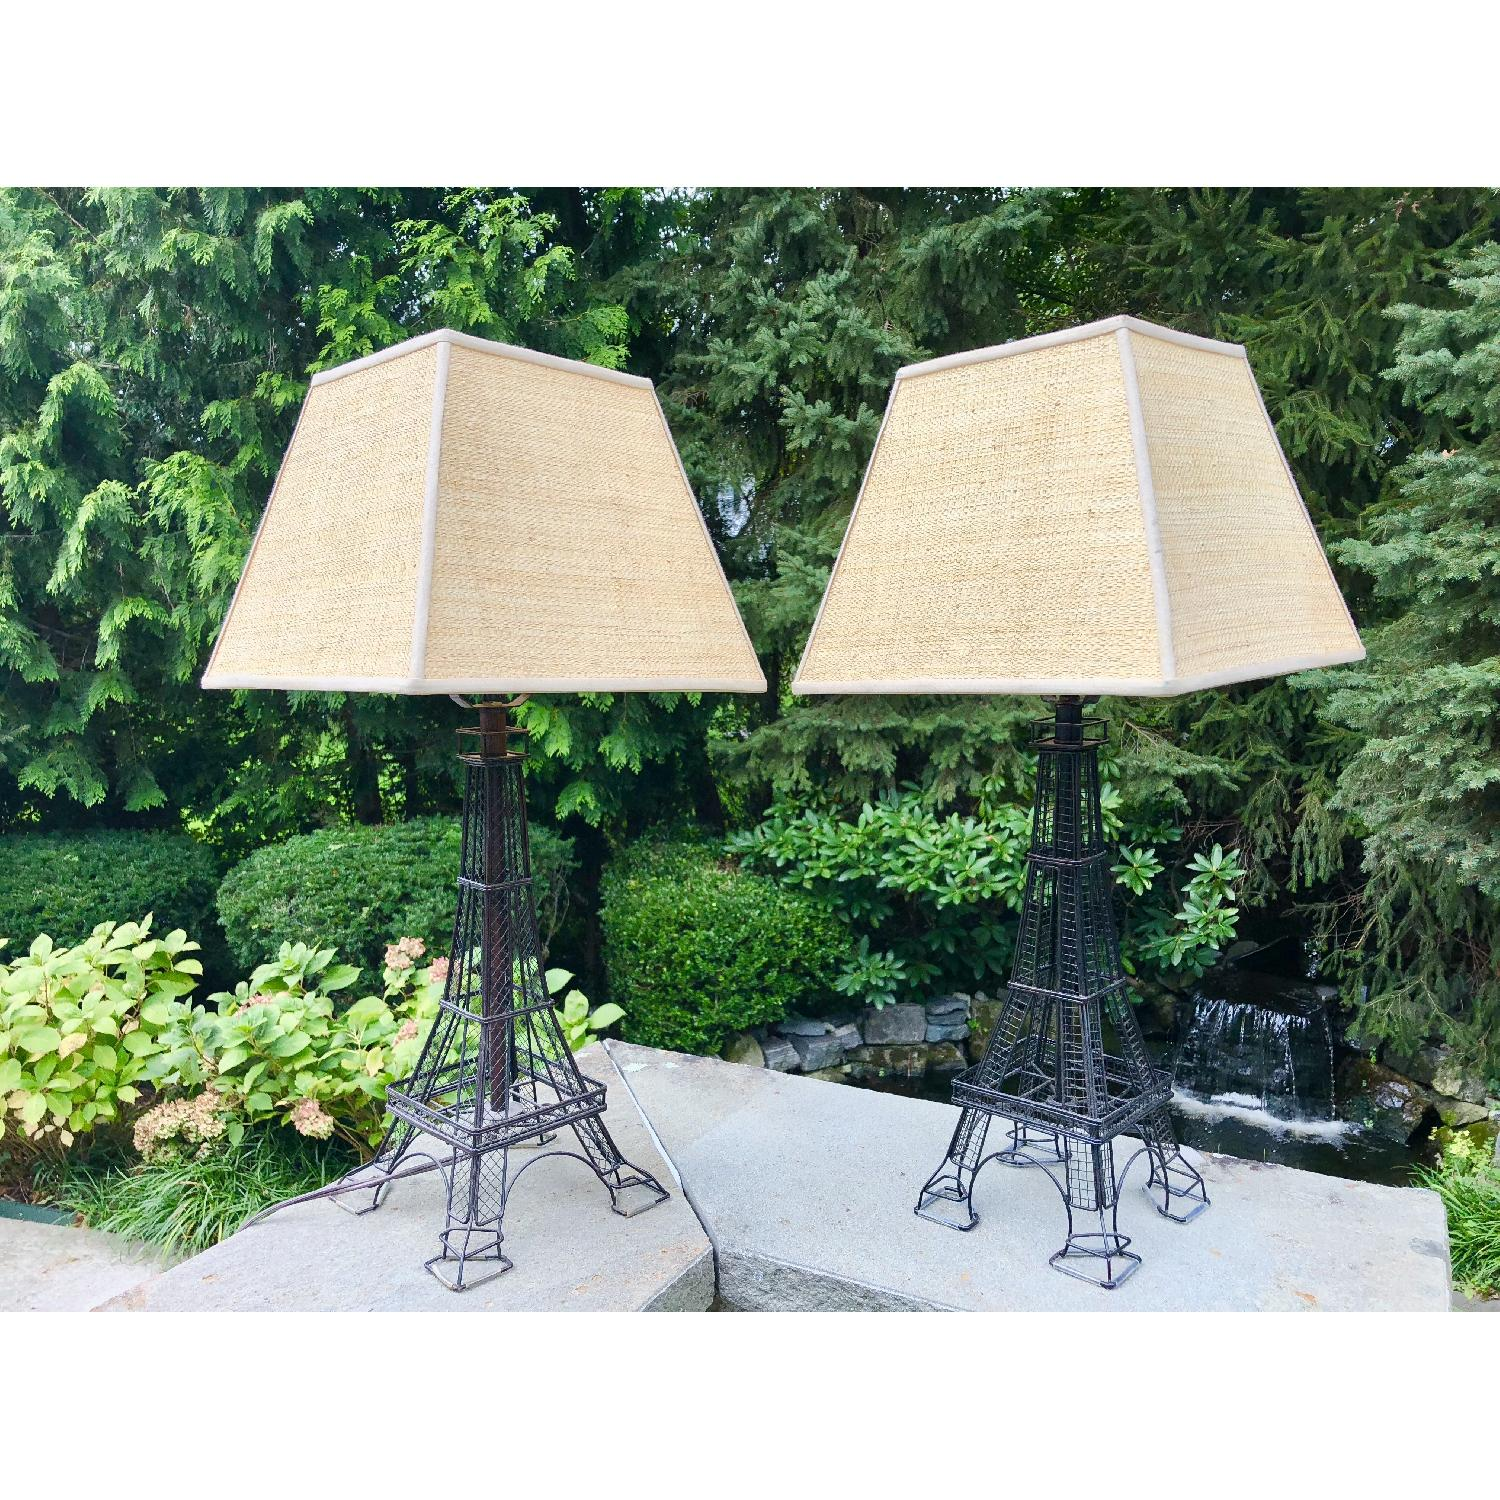 Eiffel Tower Lamps w/ Woven Shades